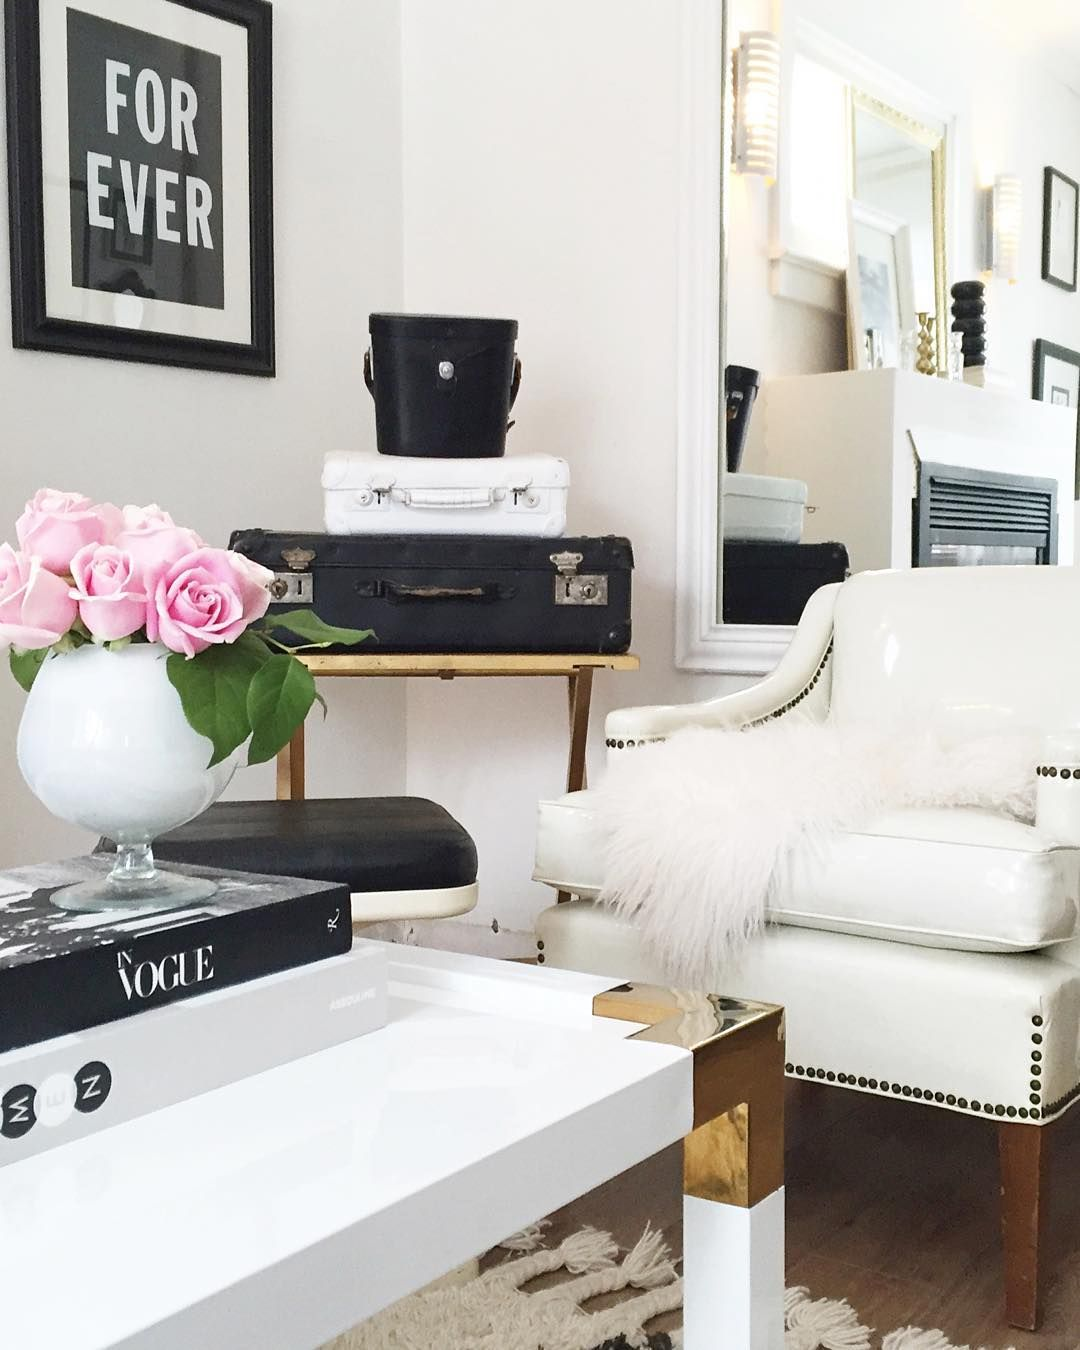 White, chic, living, room, feminine spaces, black and